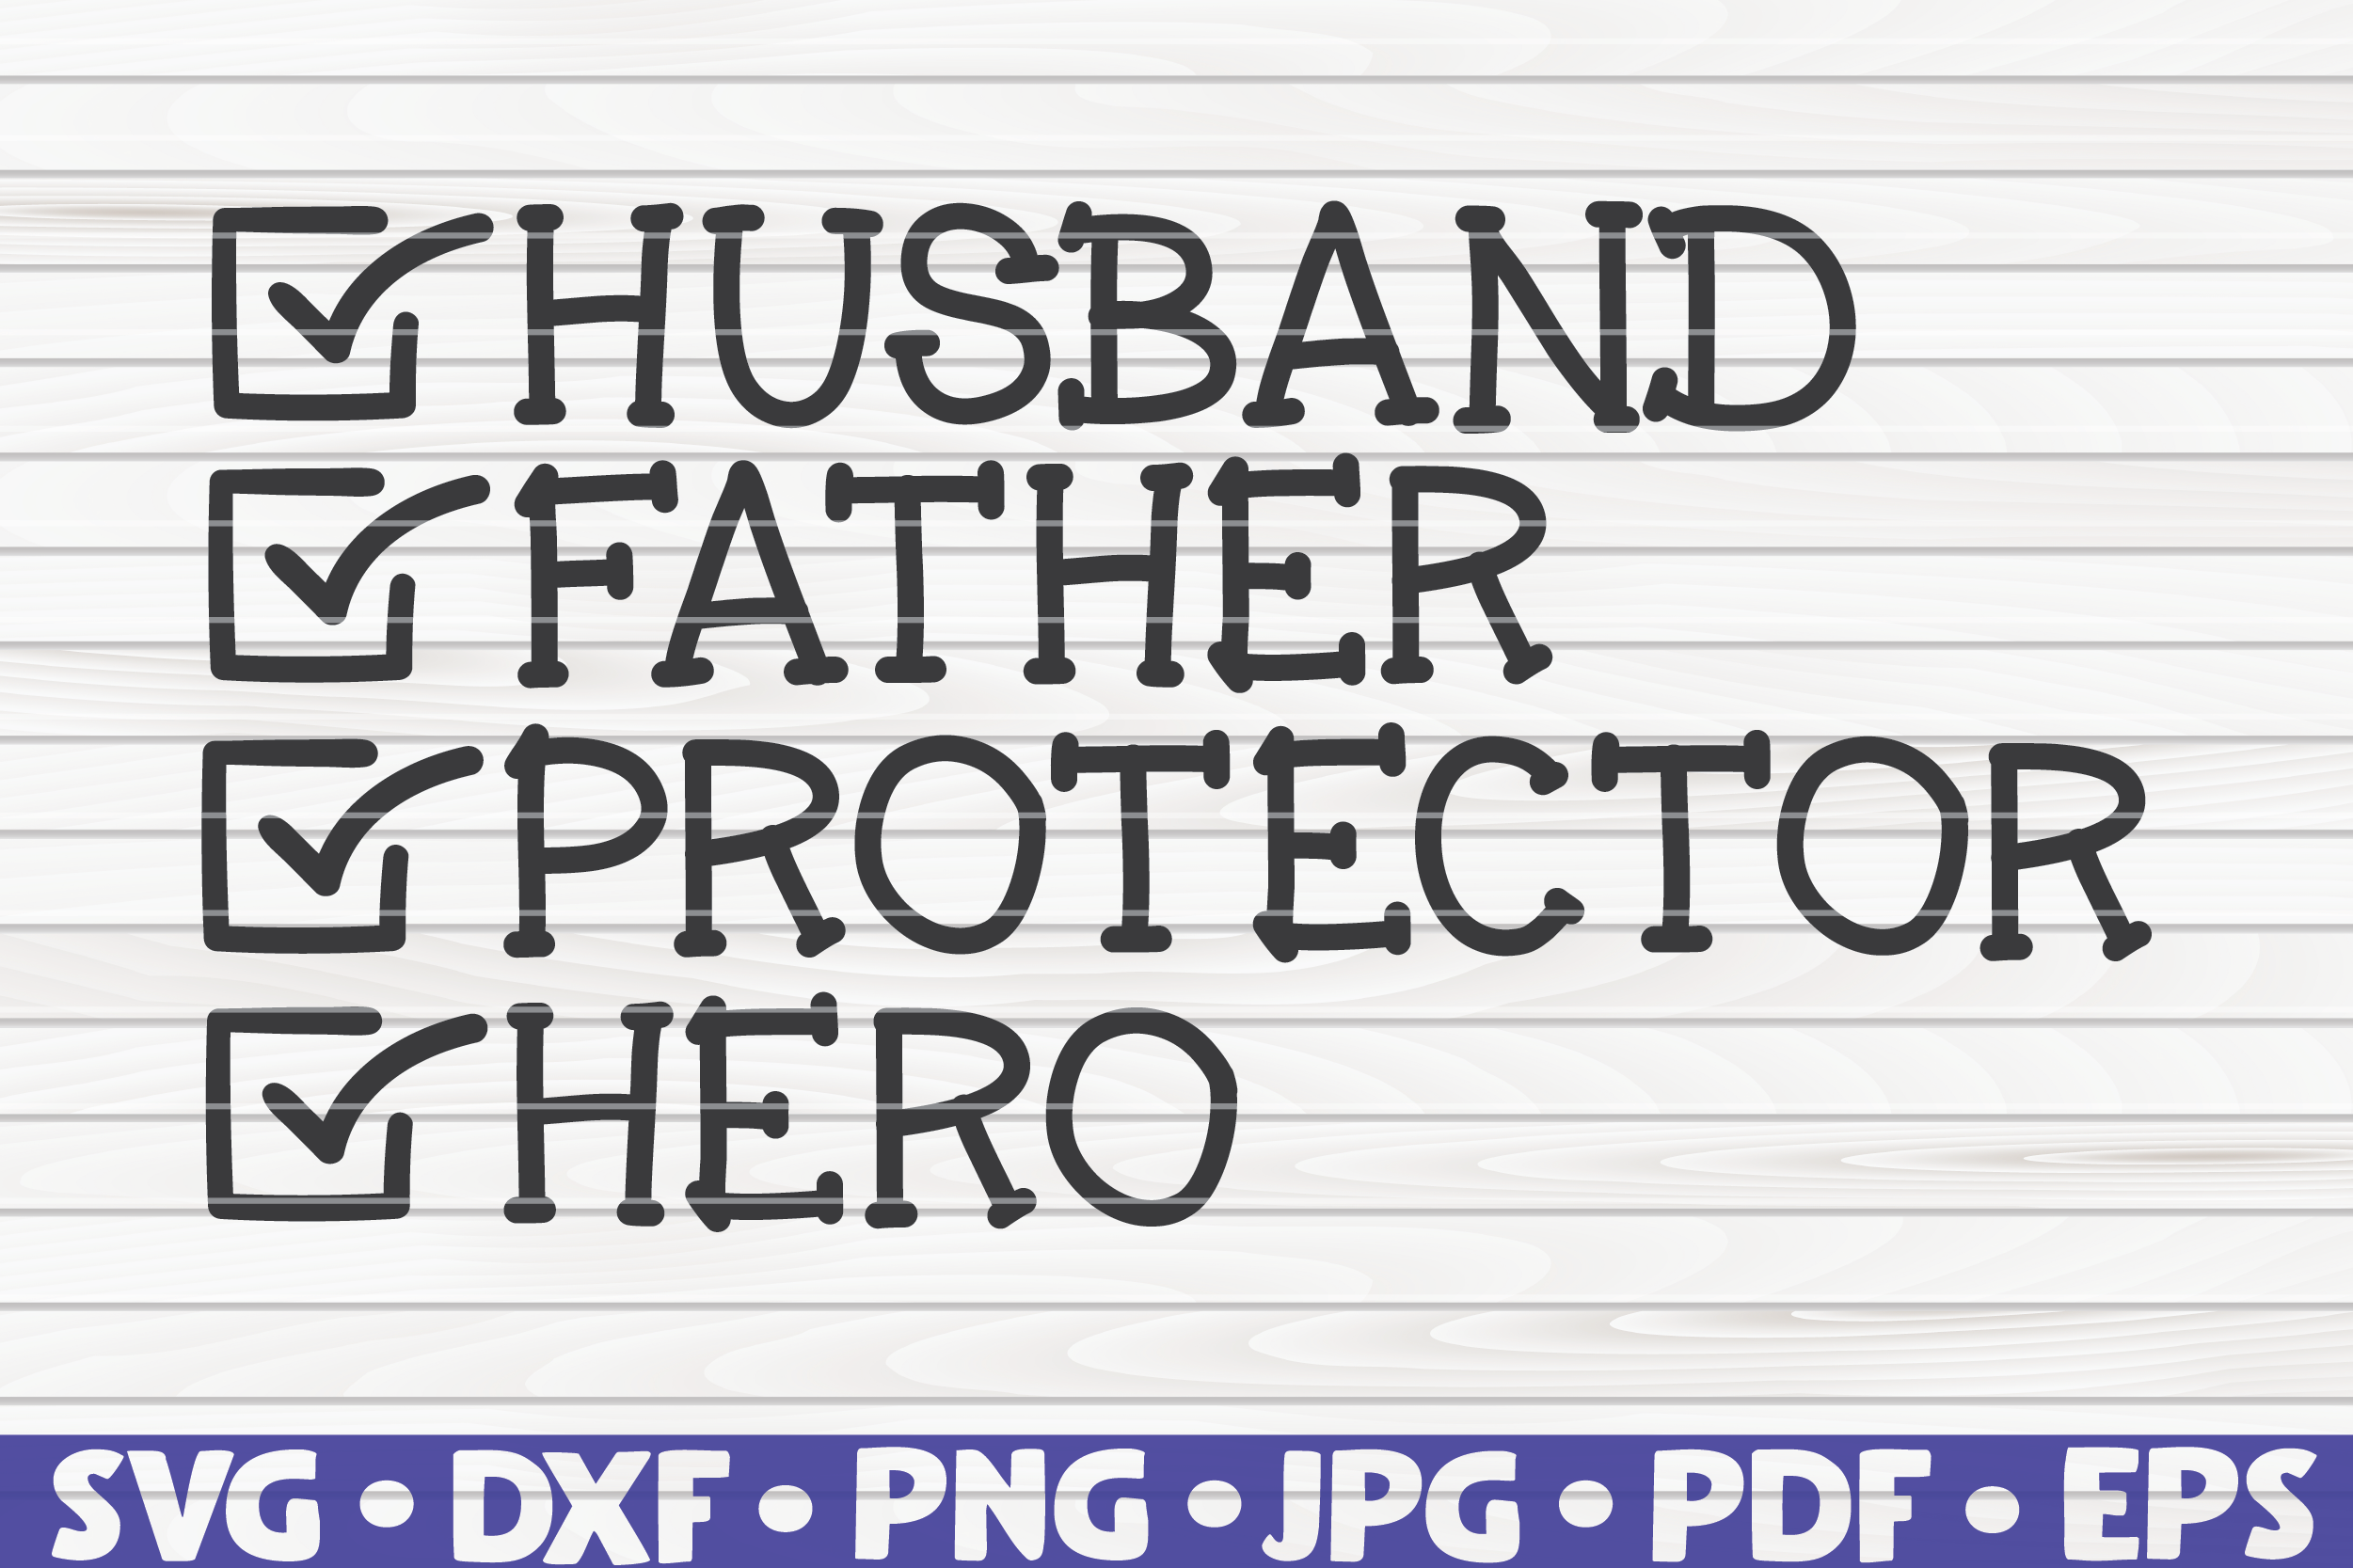 Download Free Father Checklist Word Art Vector Graphic By Mihaibadea95 for Cricut Explore, Silhouette and other cutting machines.